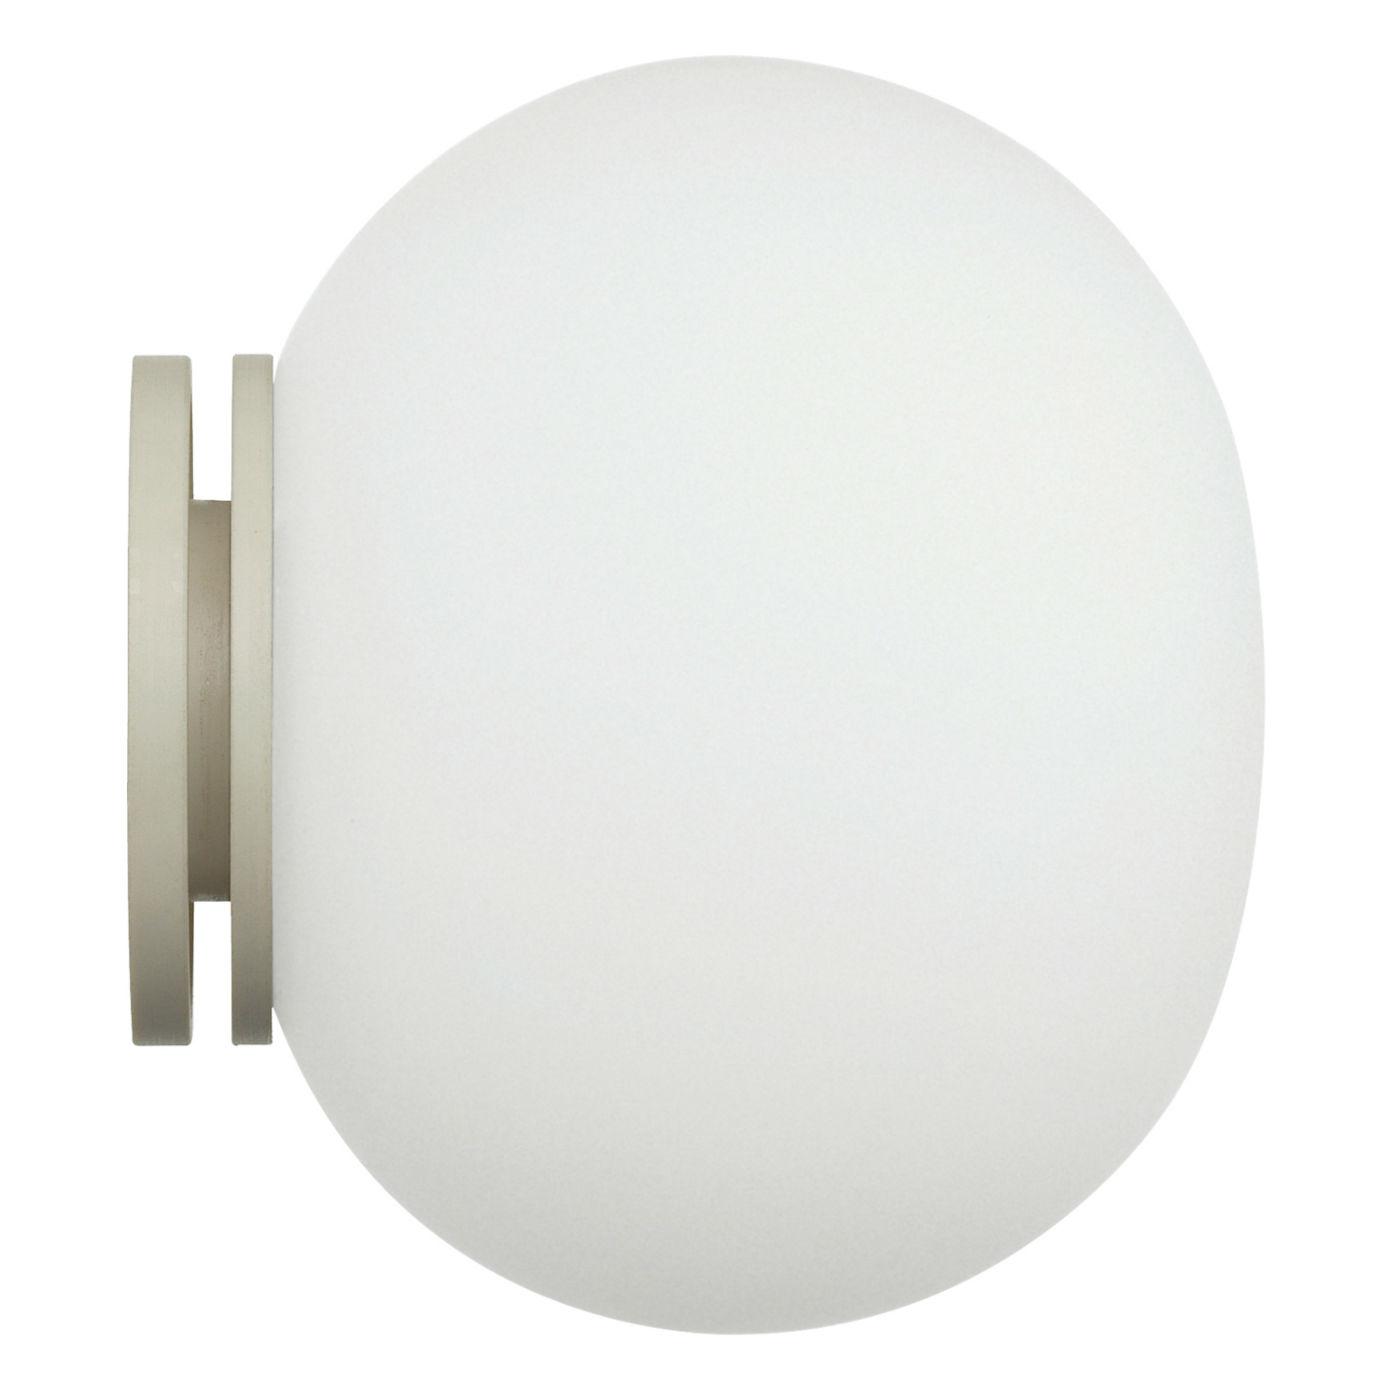 Glo Ball Mini C/W Wall lamp/ceiling lamp 11,2cm G9 20W - white opal